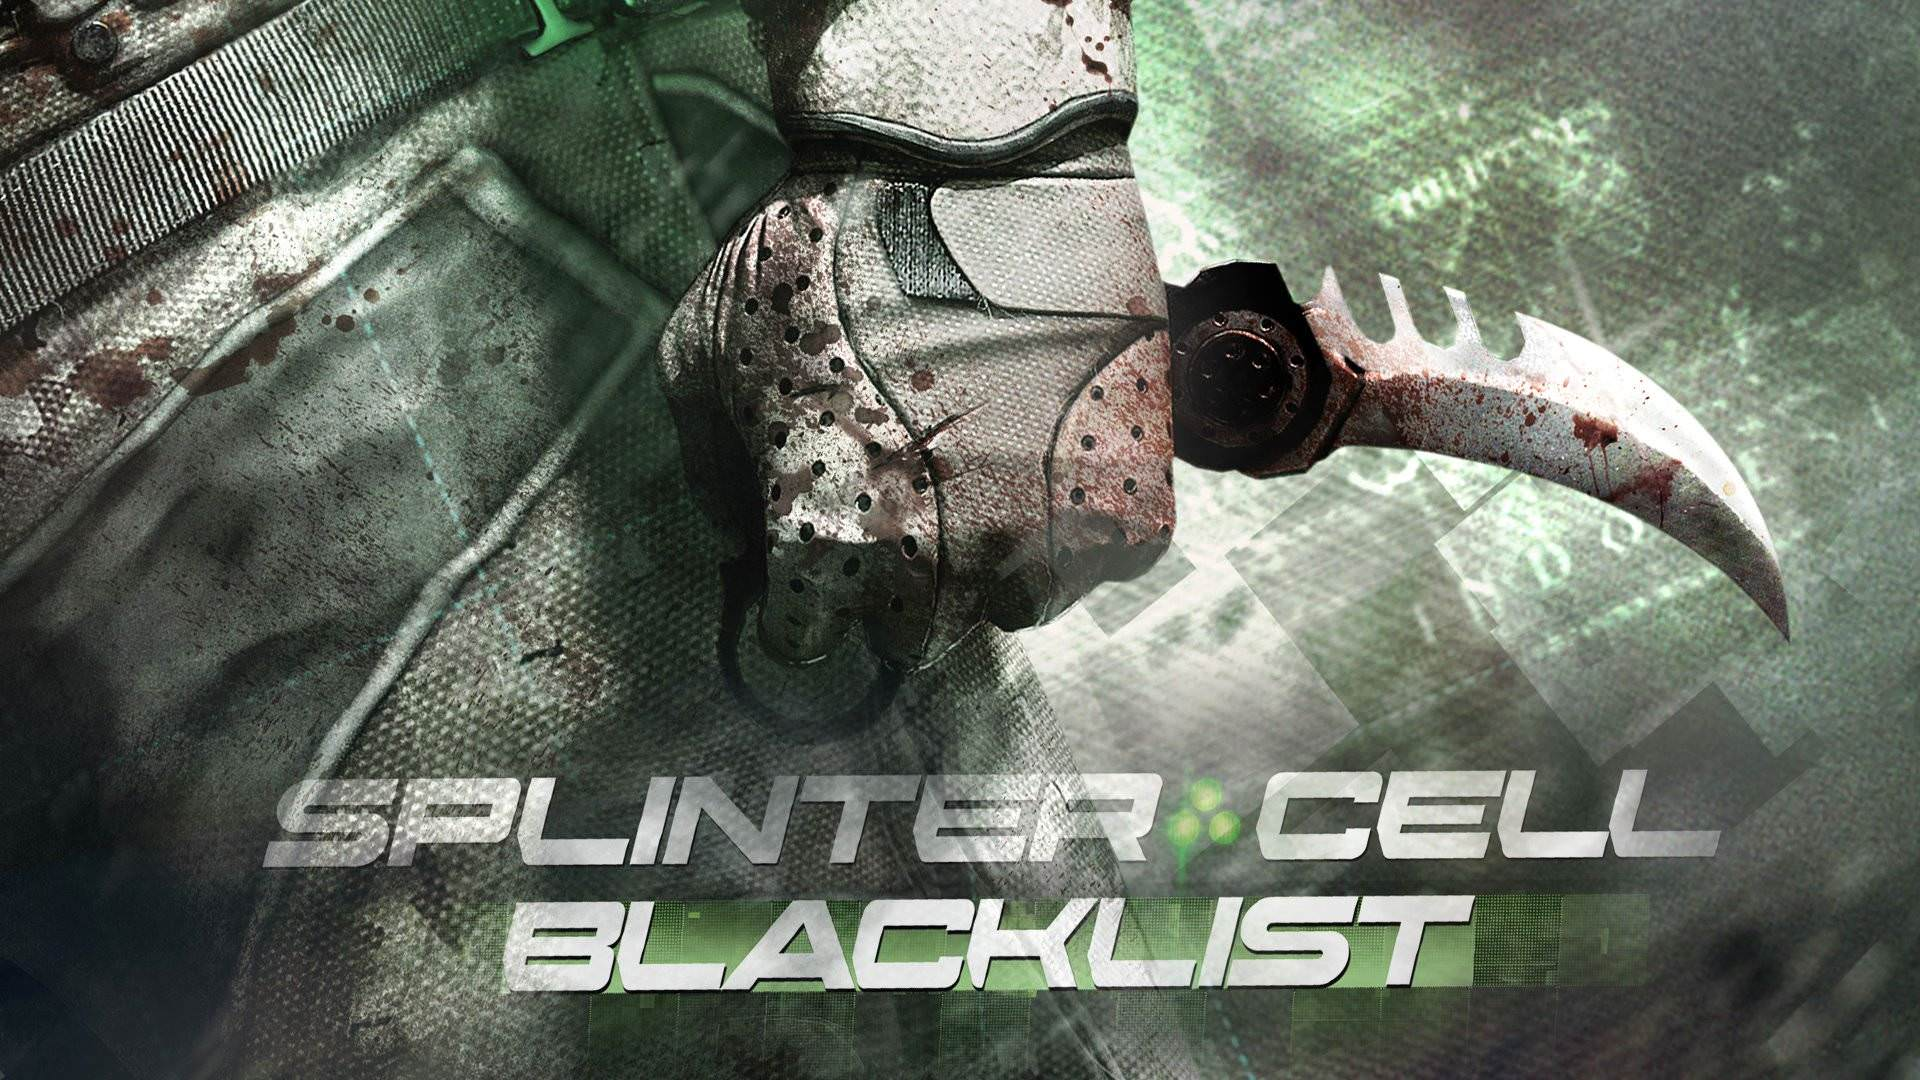 Primeros 15 minutos de Splinter Cell: Blacklist